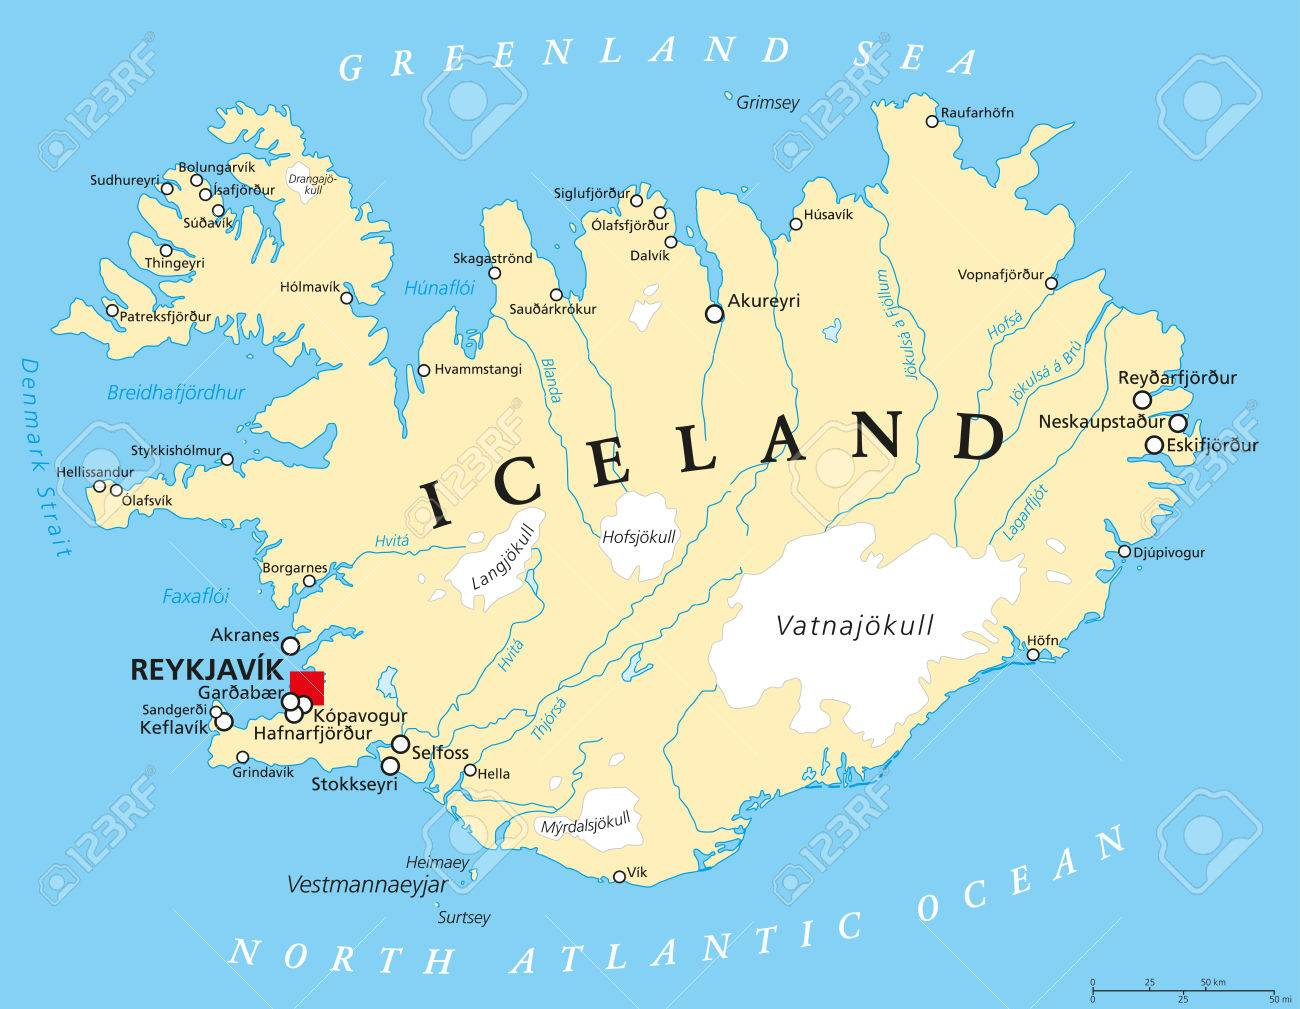 Reykjavik Iceland Map Iceland Political Map With Capital Reykjavik National Borders